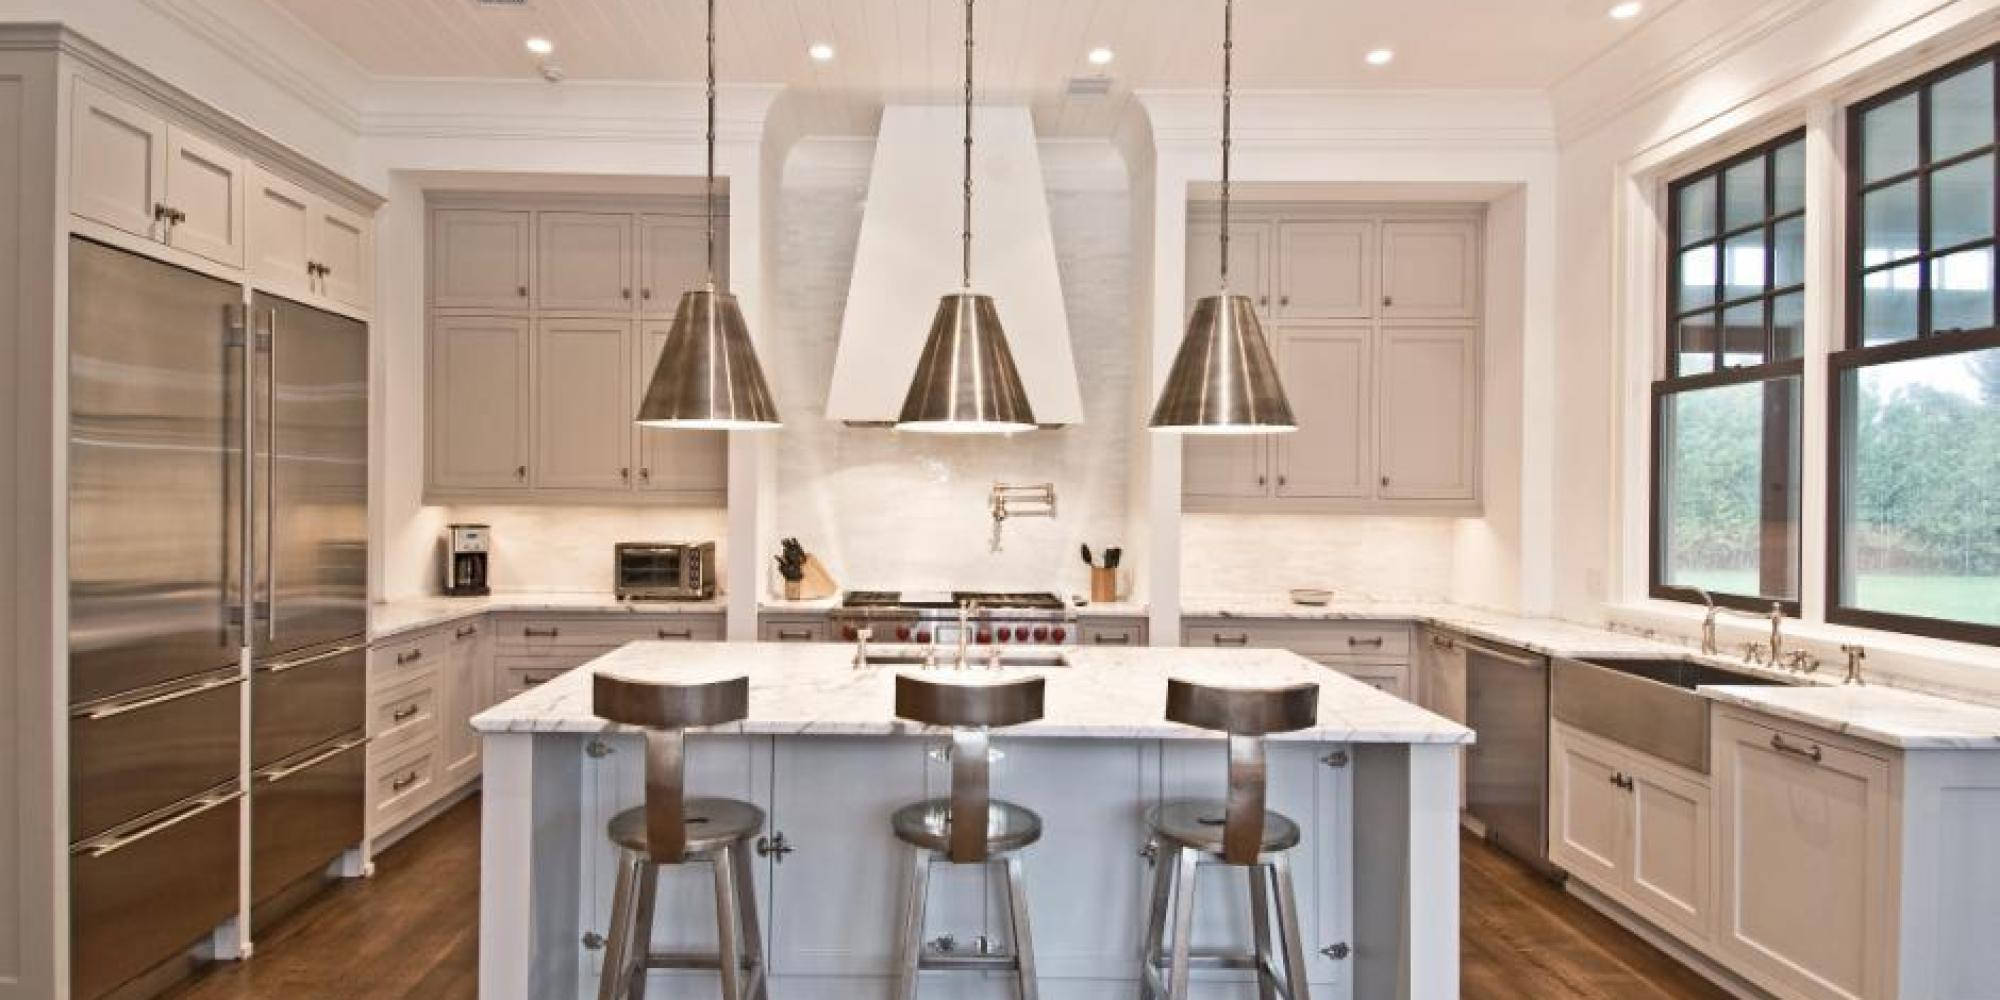 charming What Color To Paint Kitchen With White Cabinets #3: The Huffington Post